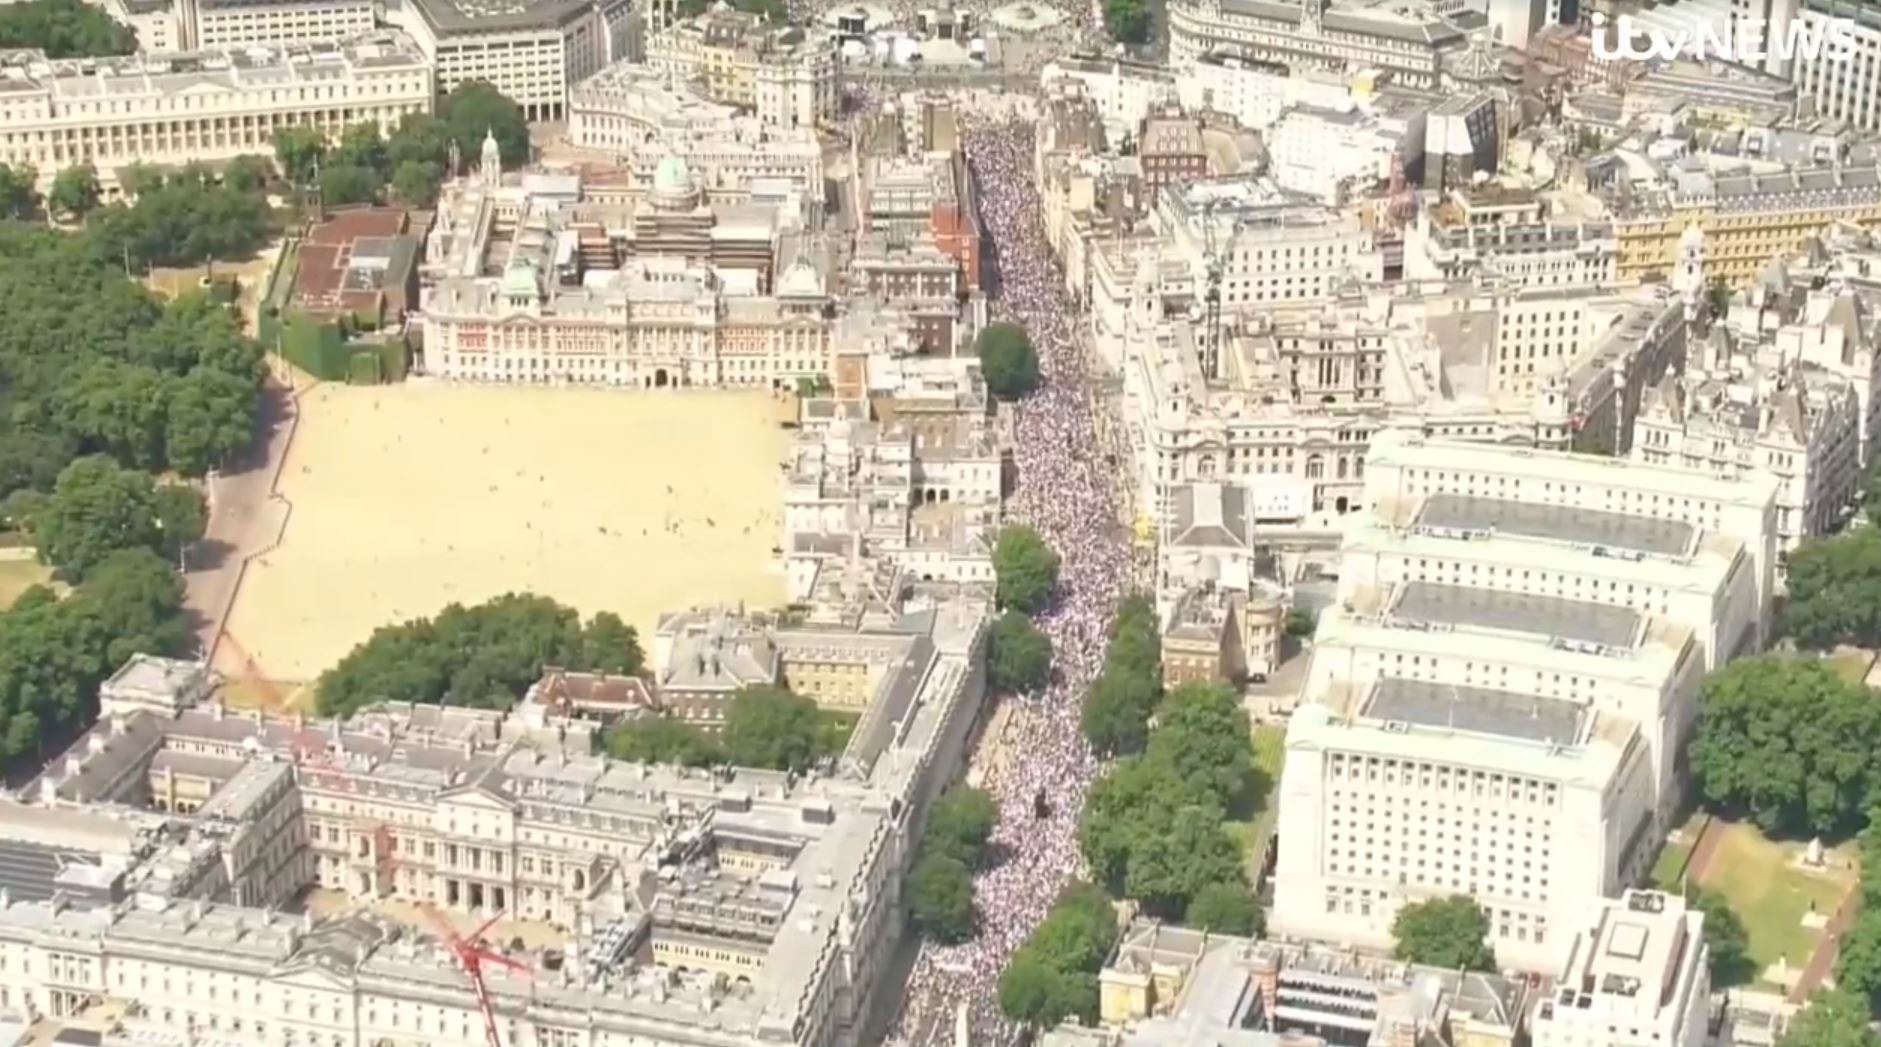 Organisers claim 100,000 people took part in the march through London (ITV)